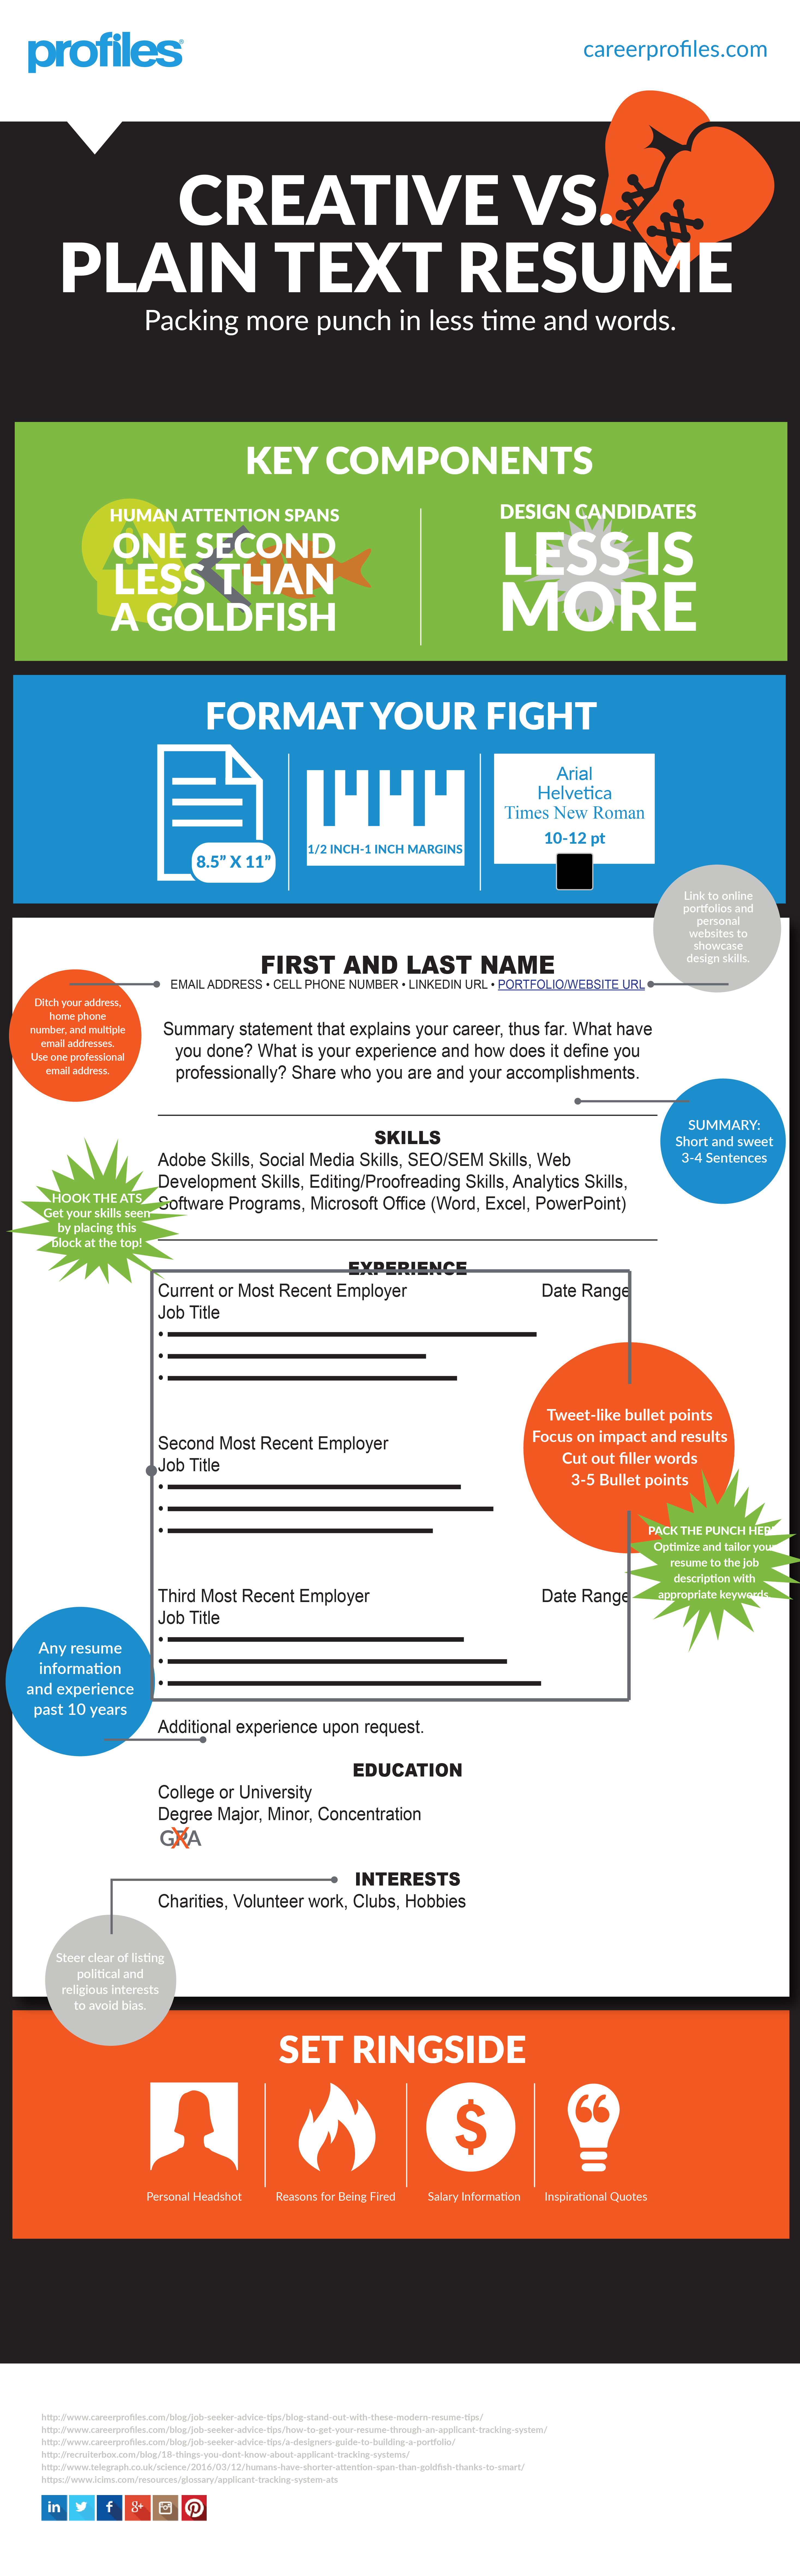 Infographic Plain Text Resume Template Career Profiles